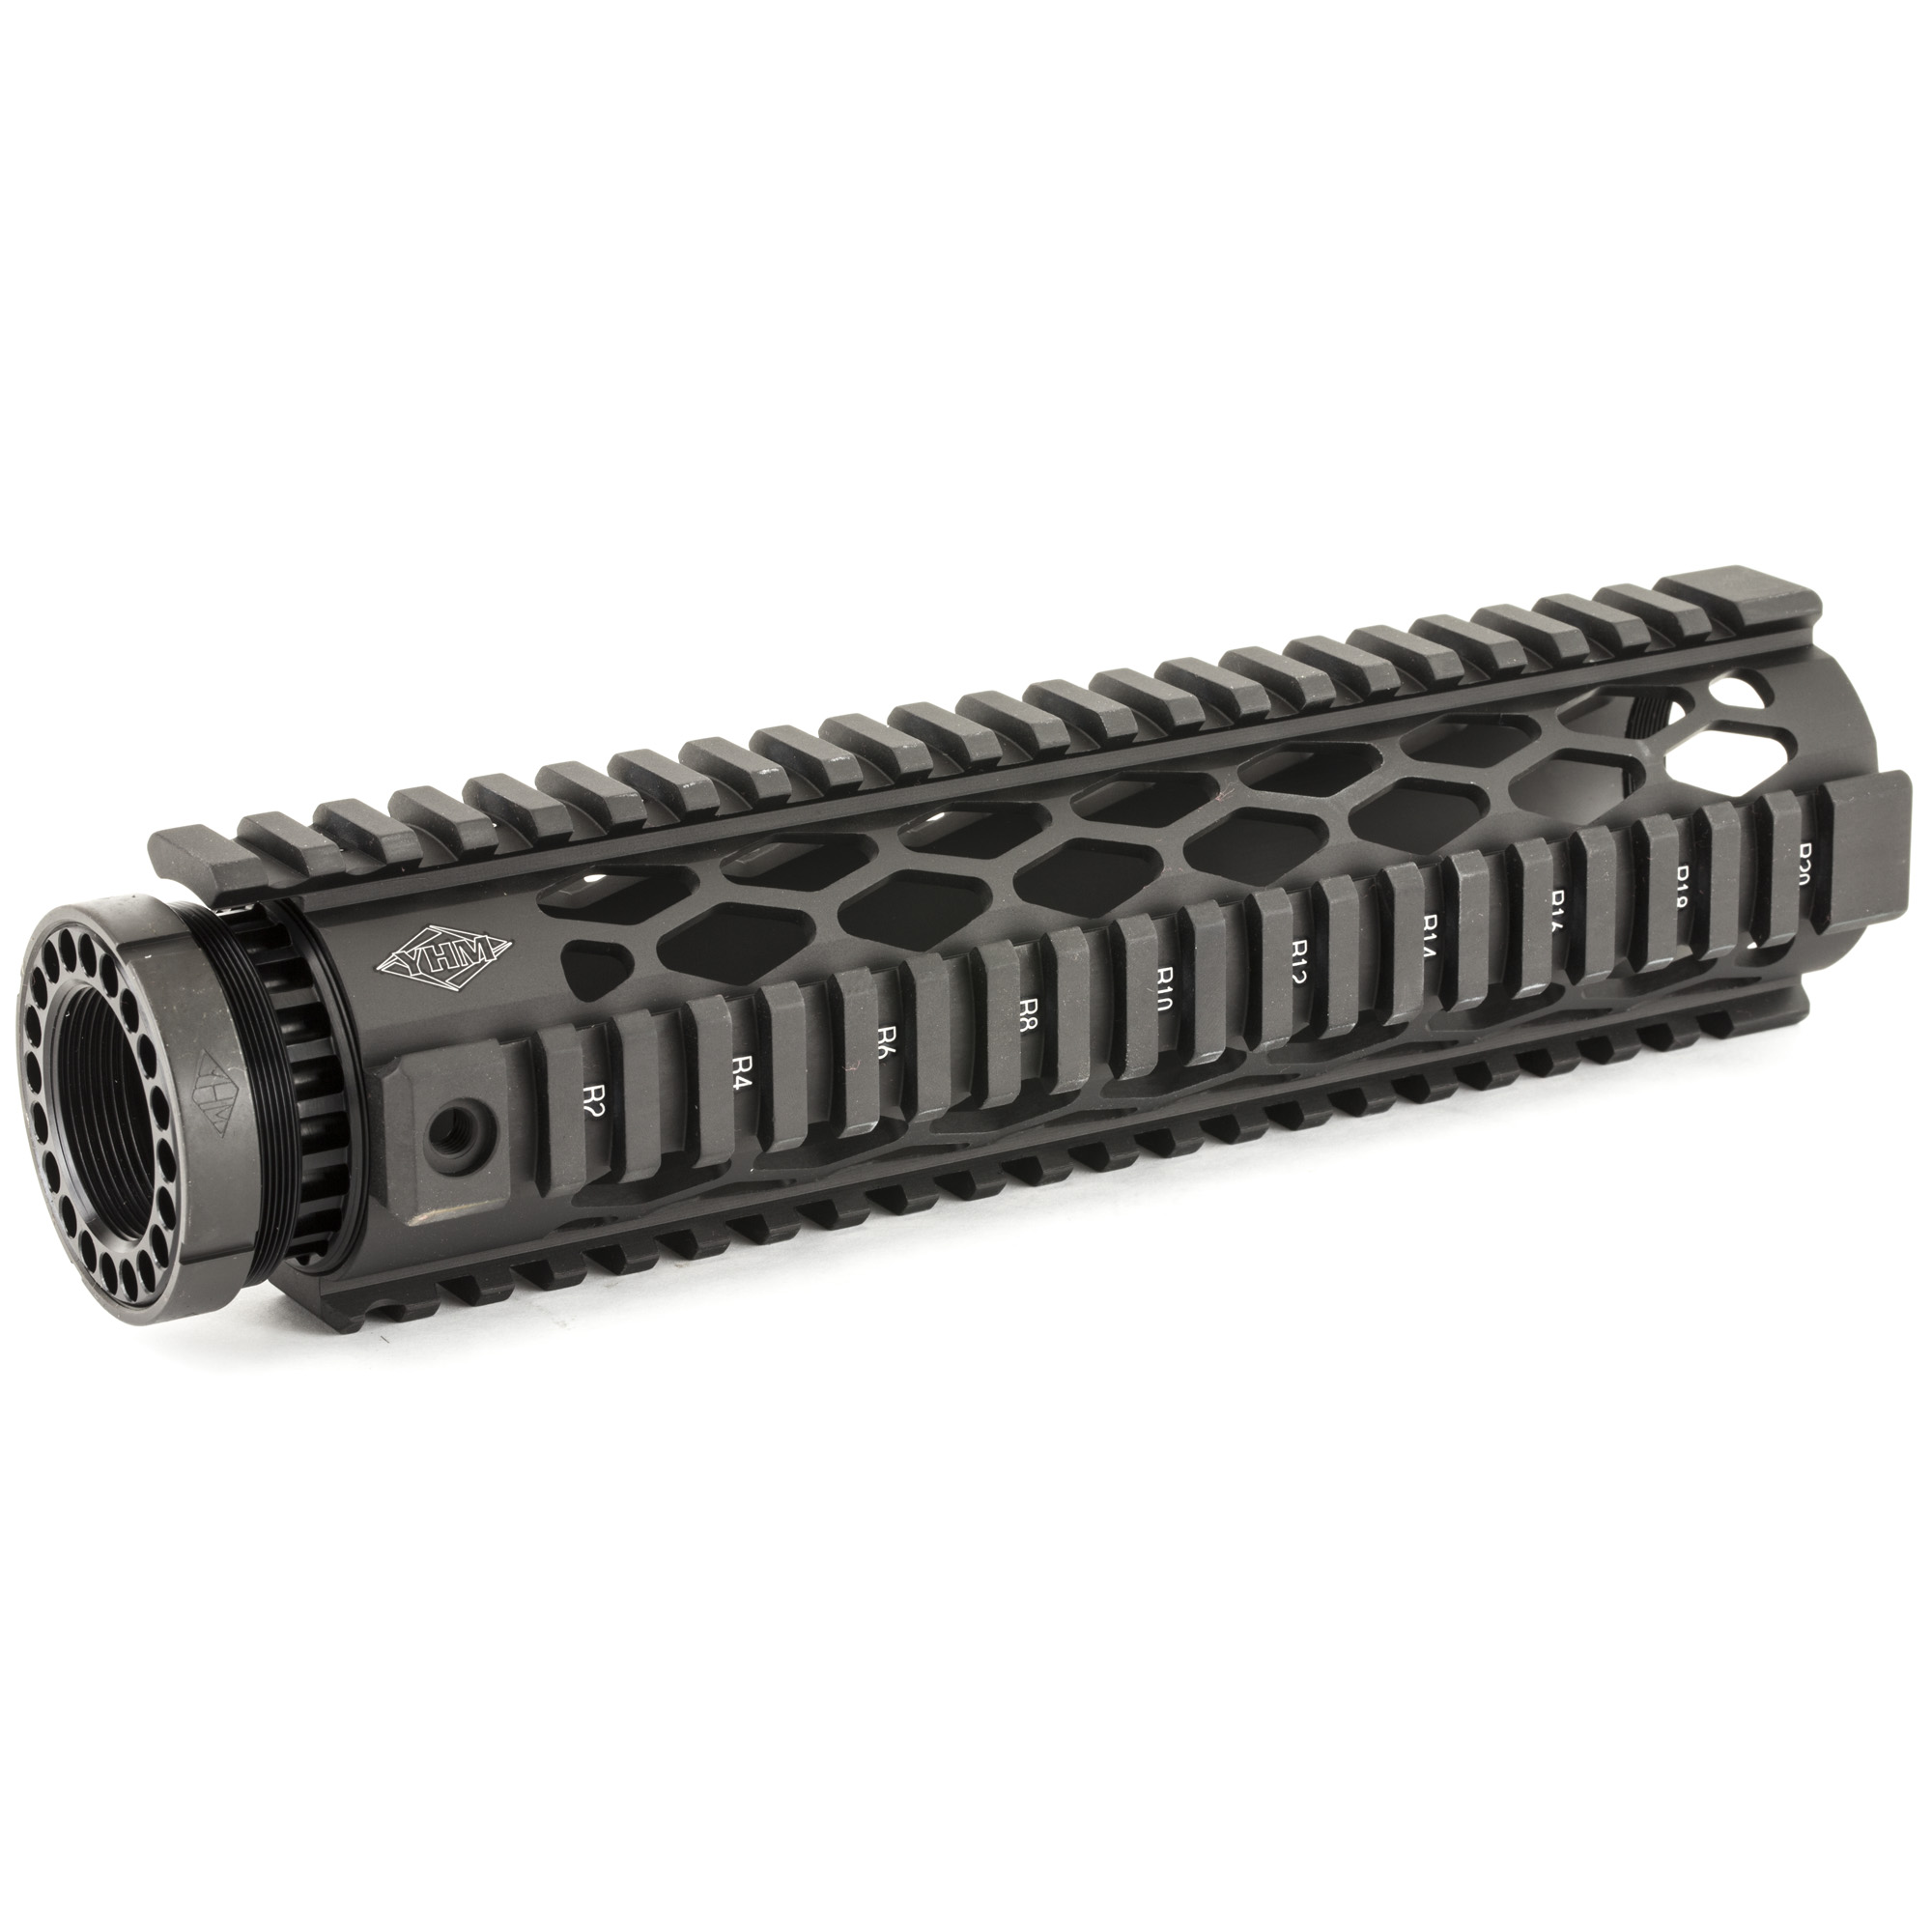 """These unique forearms feature diamond shaped heat vents"""" an extended top rail for gap-free installation"""" """"T"""" marked rails to mark accessory locations"""" they accept their end caps"""" and utilize their anti-rotation screws for secure installation. The forearms and barrel nuts are made of 6061-T6 aluminum and hardcoated to military specifications. The jam nut and anti-rotation screws are steel and plated a matte black finish to match."""